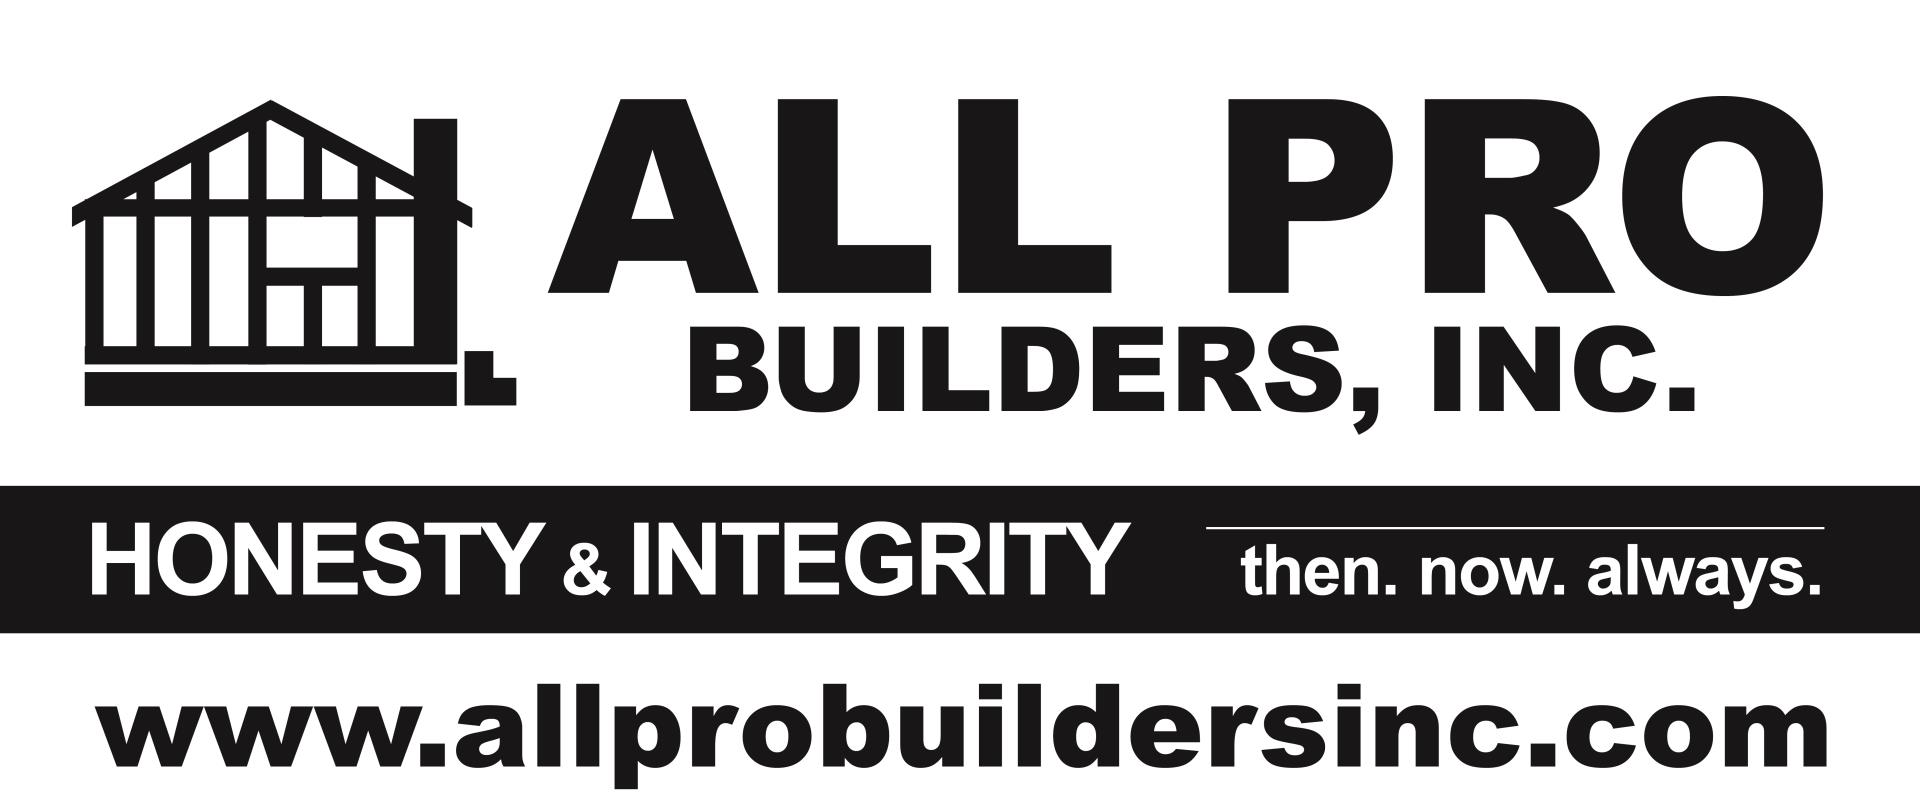 All Pro Builders